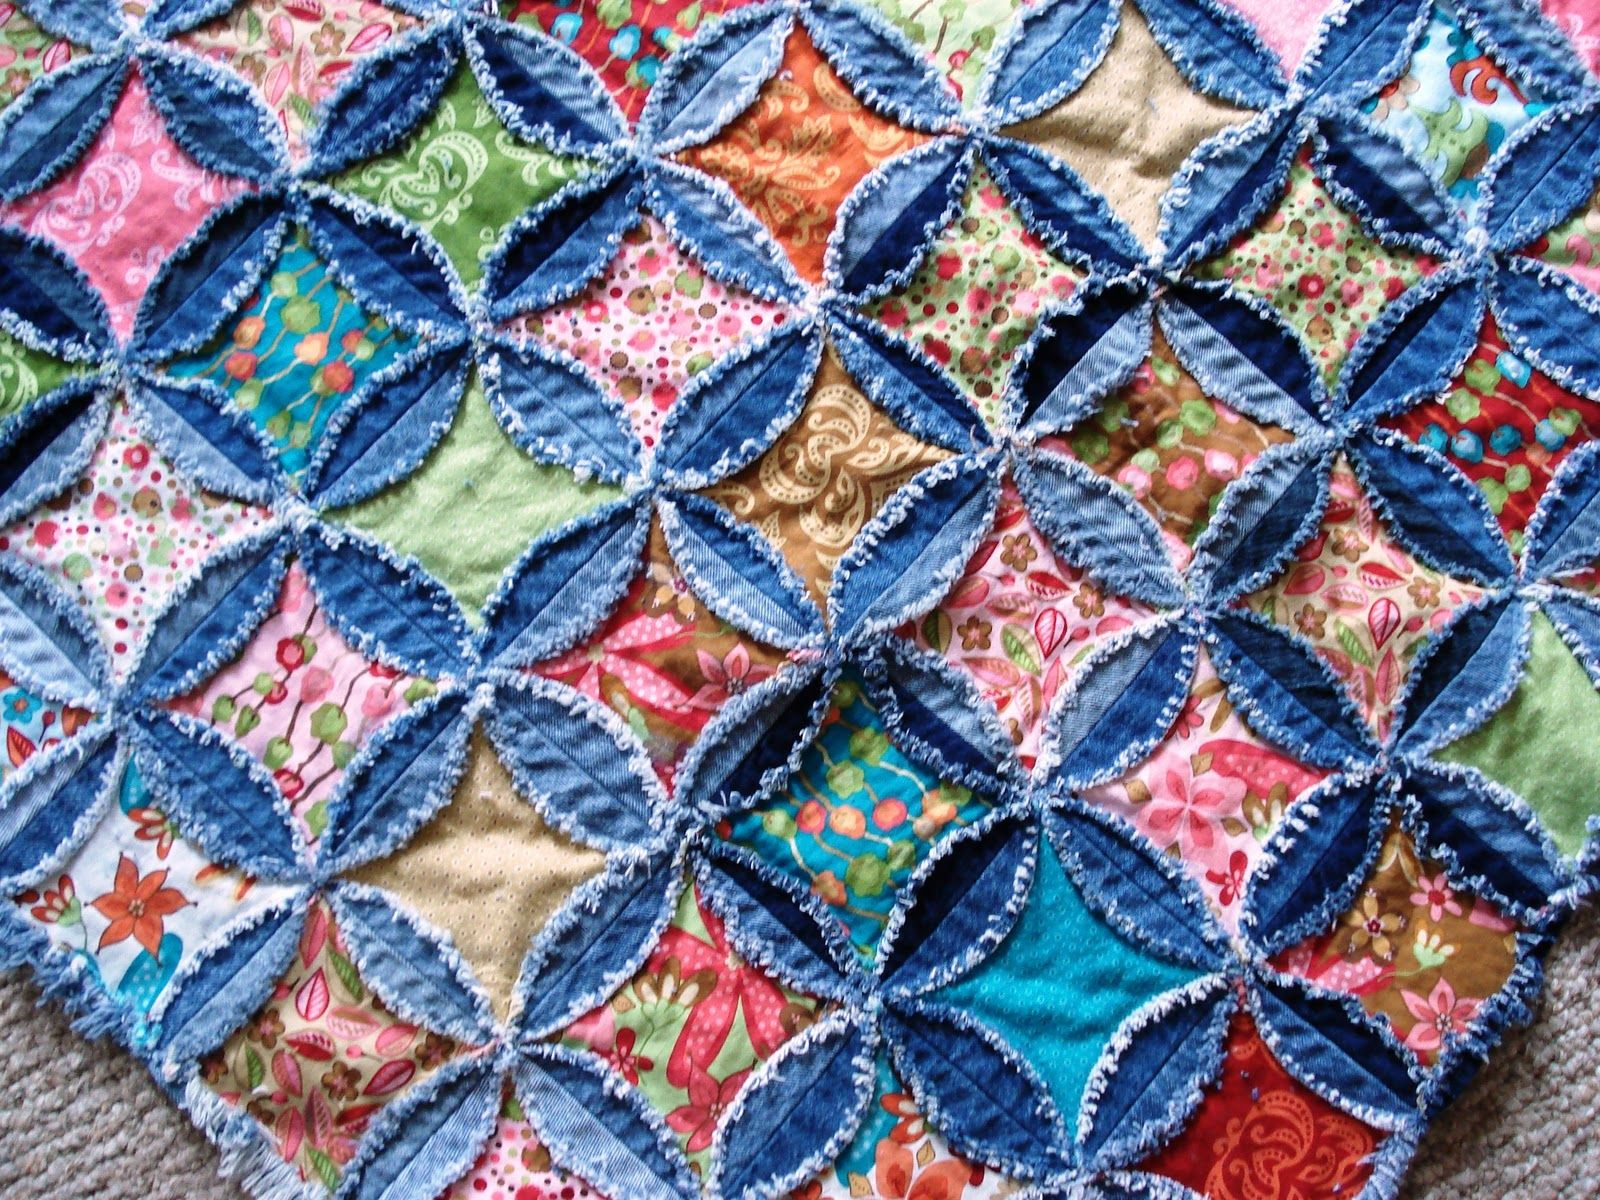 Recycled Denim Jeans Rag Quilt Pattern Apassionatequilter